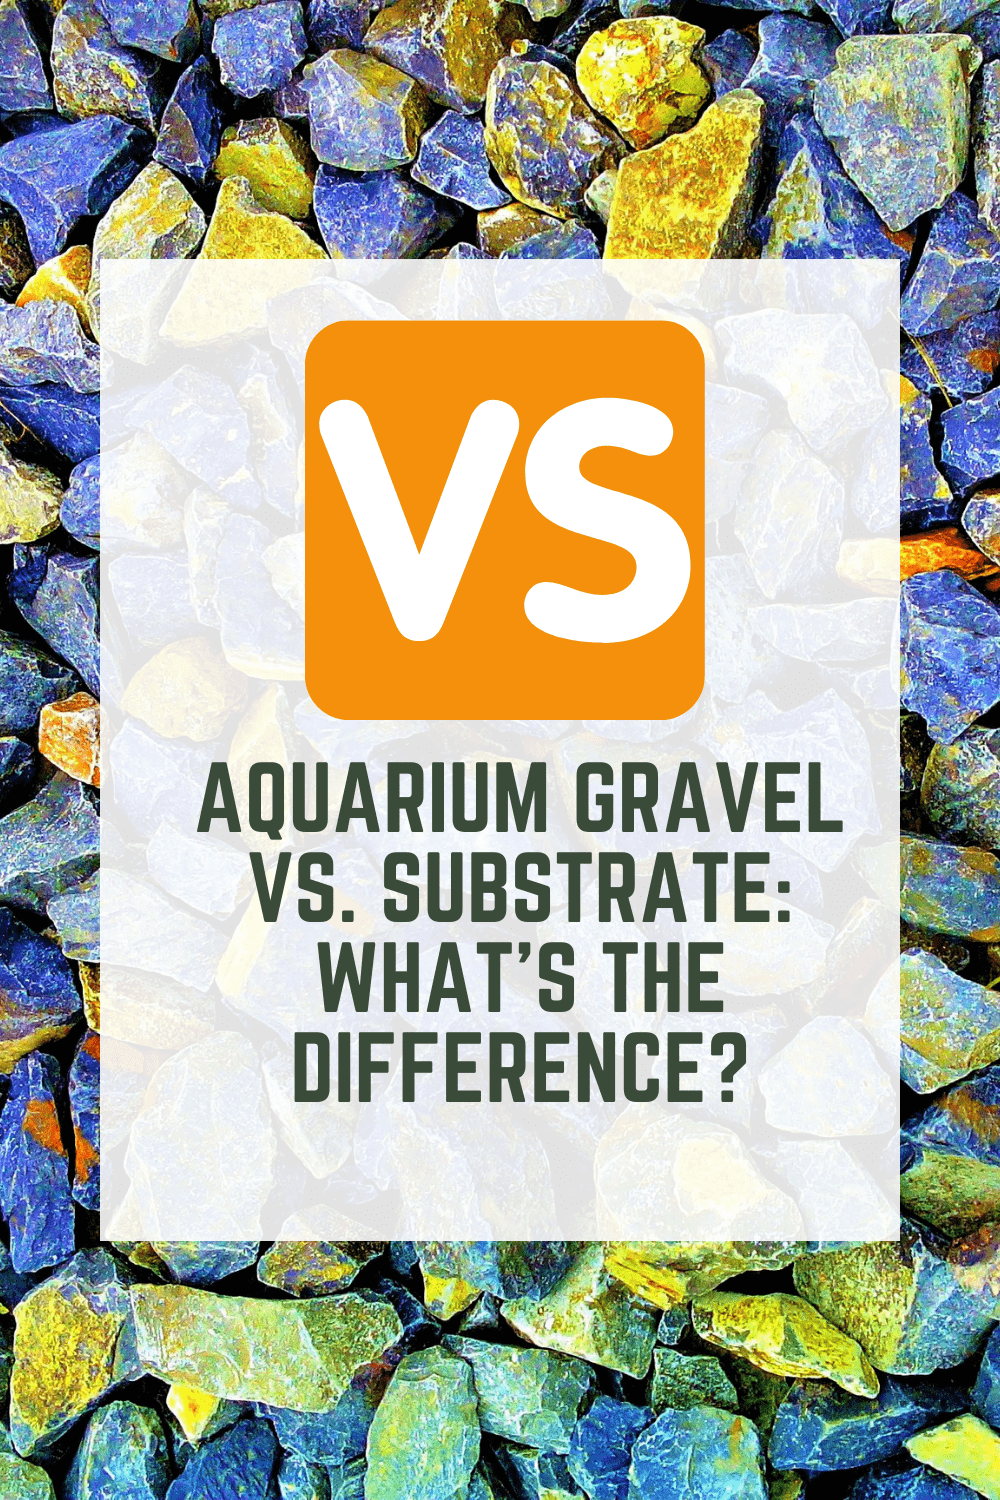 Aquarium gravel Vs. Substrate: What's the difference